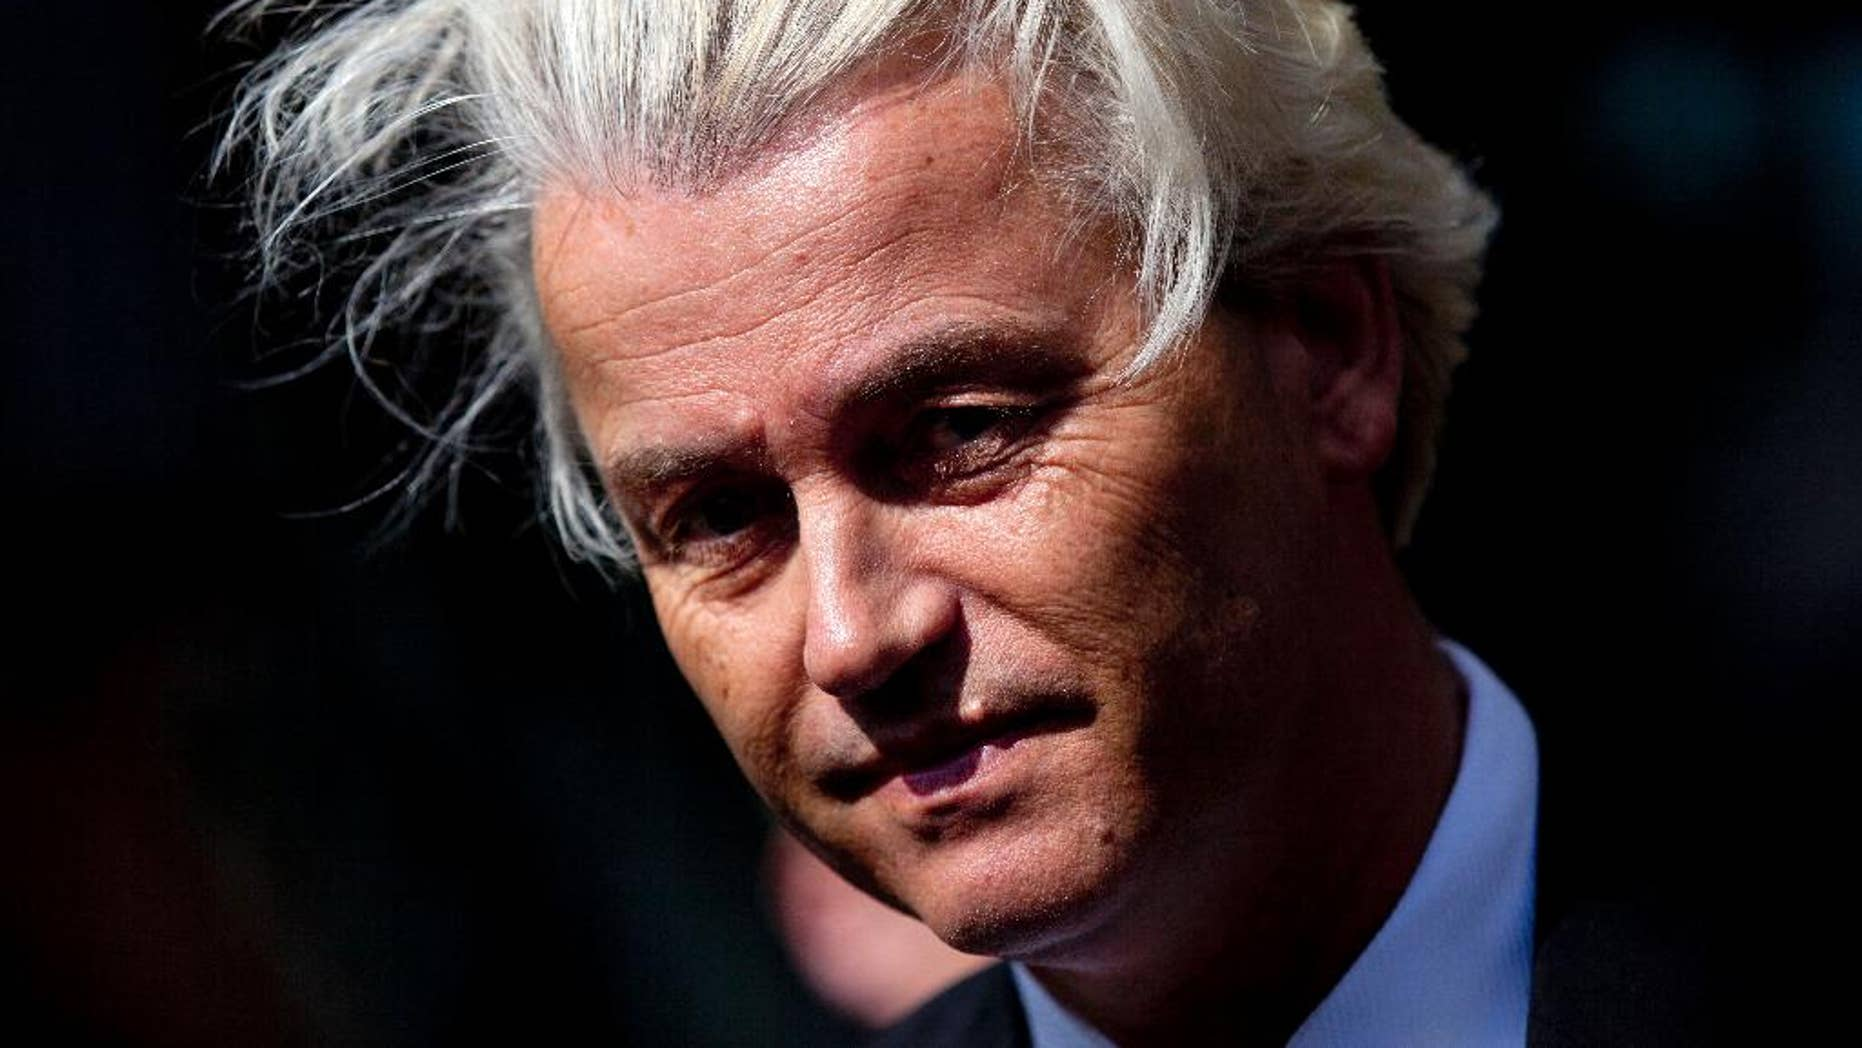 "FILE - In this May 12, 2014 file photo Dutch lawmaker Geert Wilders pauses, as he speaks to journalists outside the Dutch National Bank in Amsterdam. Dutch authorities on Thursday, Dec. 18, 2014, said they will prosecute Wilders for hate speech over a chant in which he asked his supporters whether they wanted more or fewer Moroccans in the Netherlands and they shouted back ""Fewer! Fewer! Fewer!"" The announcement marks the second time Wilders has faced charges linked to his anti-immigrant and anti-Islam rhetoric. He was acquitted of similar charges in 2011 for comparing Islam with Naziism and calling for a ban on the Quran. (AP Photo/Peter Dejong, File)"